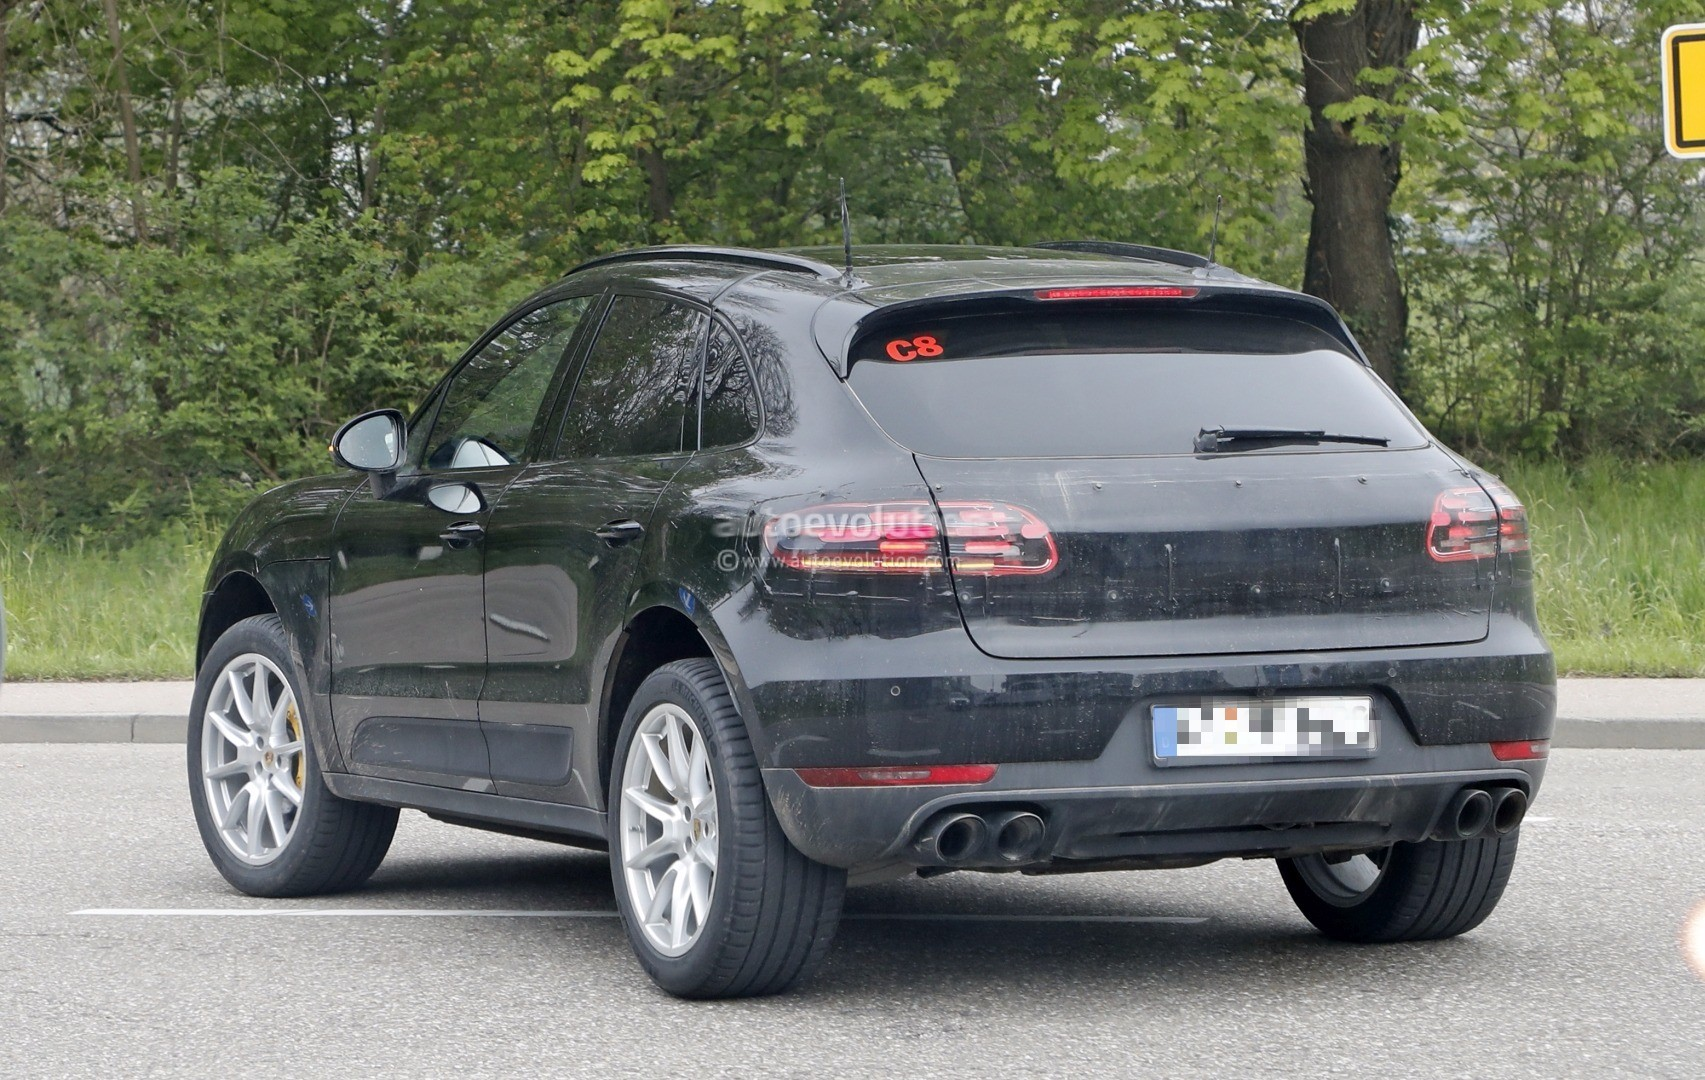 2018 2019 porsche macan facelift spied prototype suggests full width taillights autoevolution. Black Bedroom Furniture Sets. Home Design Ideas